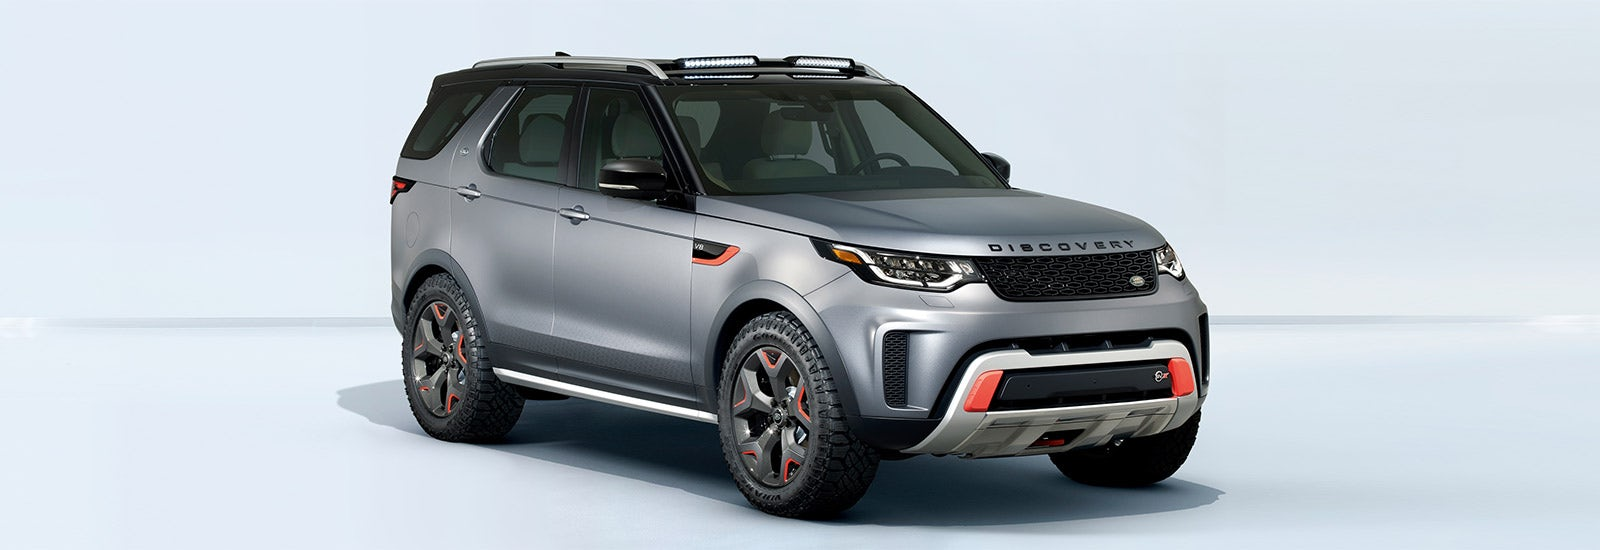 land rover discovery svx 4x4 suv price specs release date autos post. Black Bedroom Furniture Sets. Home Design Ideas